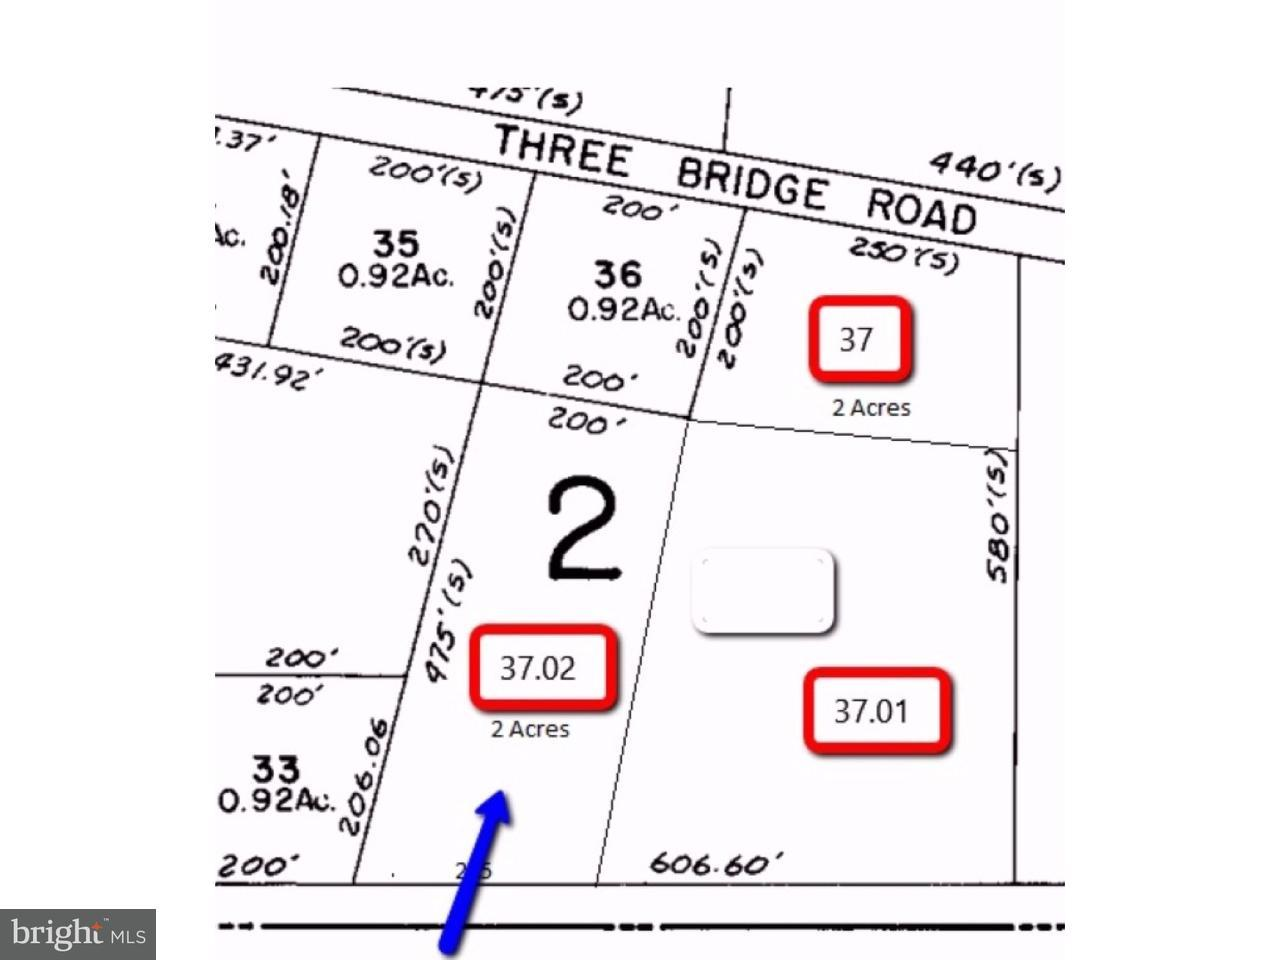 Detail additionally FX10173094 in addition Detail besides East Central Wi Land For Sale further Detail. on 1 2 acre lot